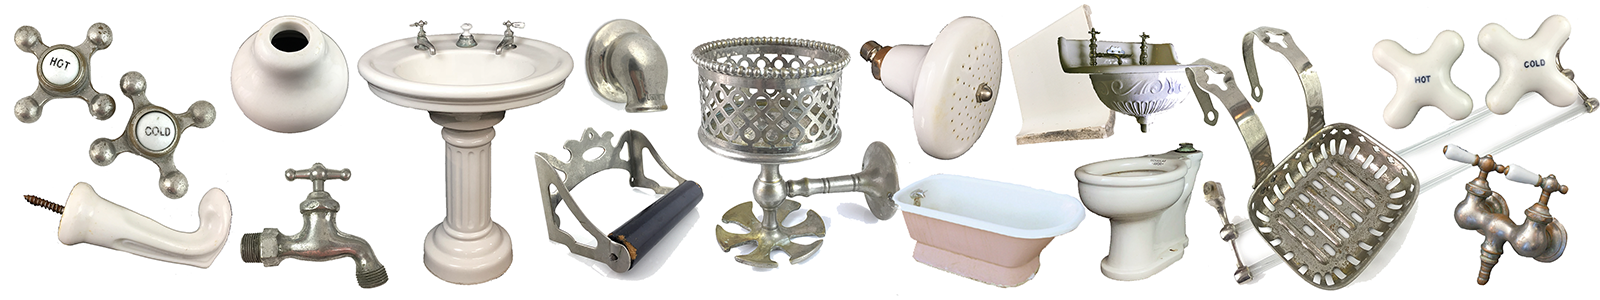 Antique Bath Items